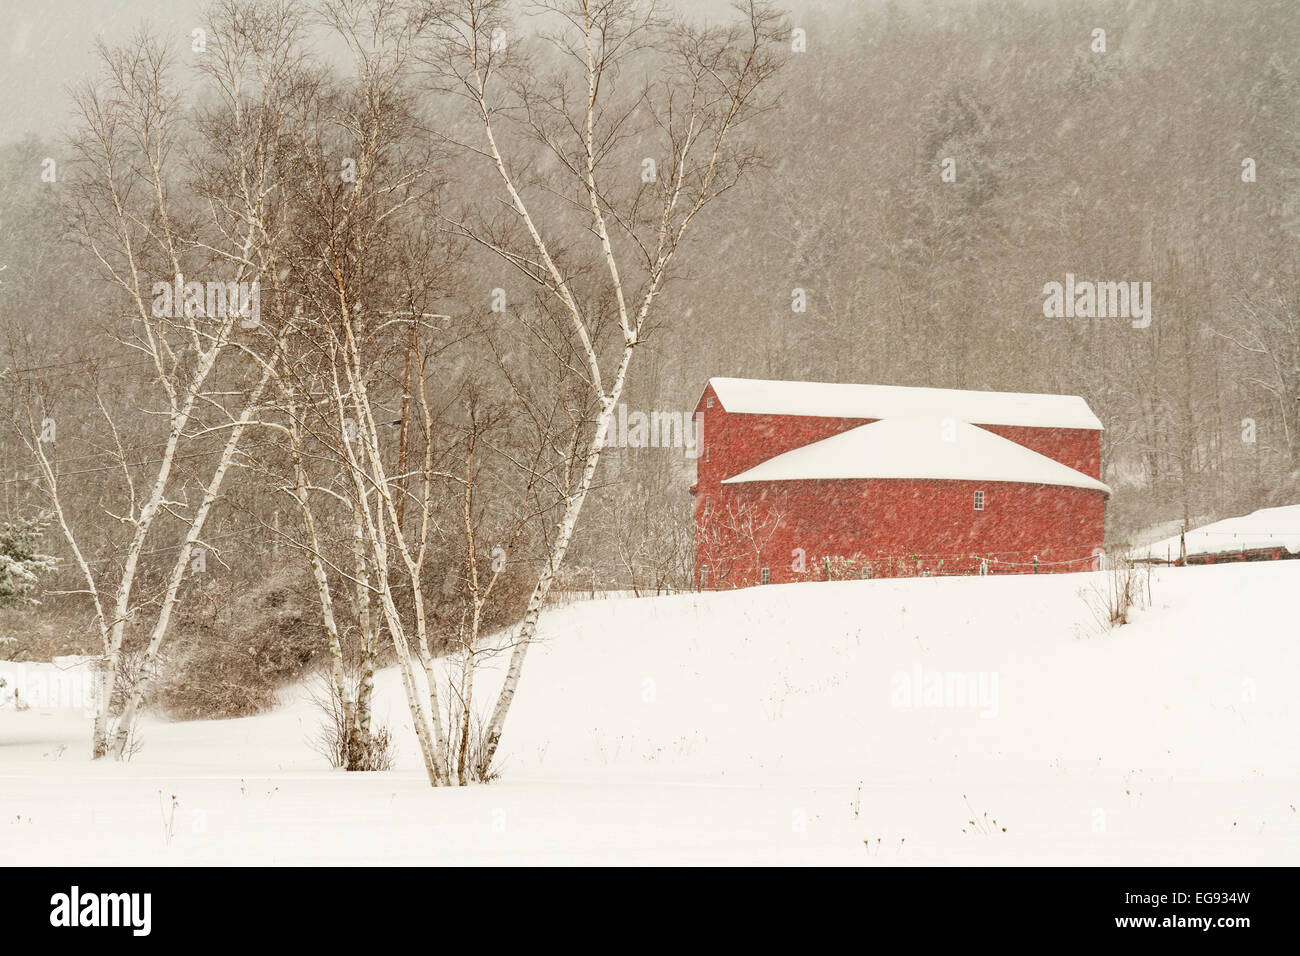 Birch trees and the Pakatakan Round Barn on a snowy winter's day in the Catskills Mountains of New York. - Stock Image